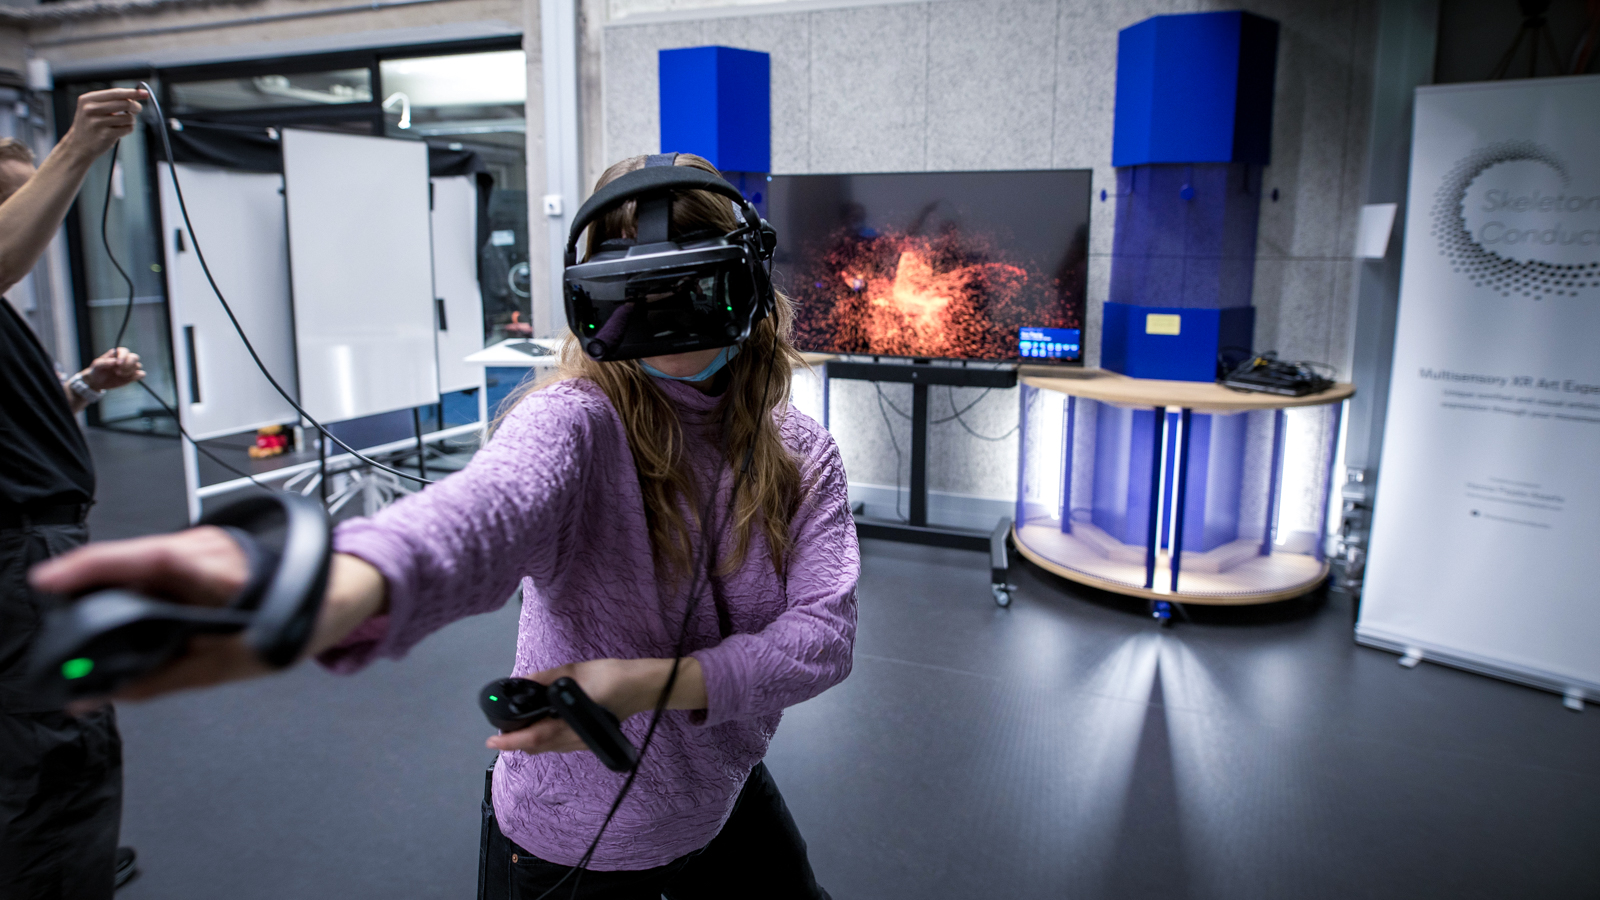 Testing a VR headset. Photo: Lauri Tiainen.